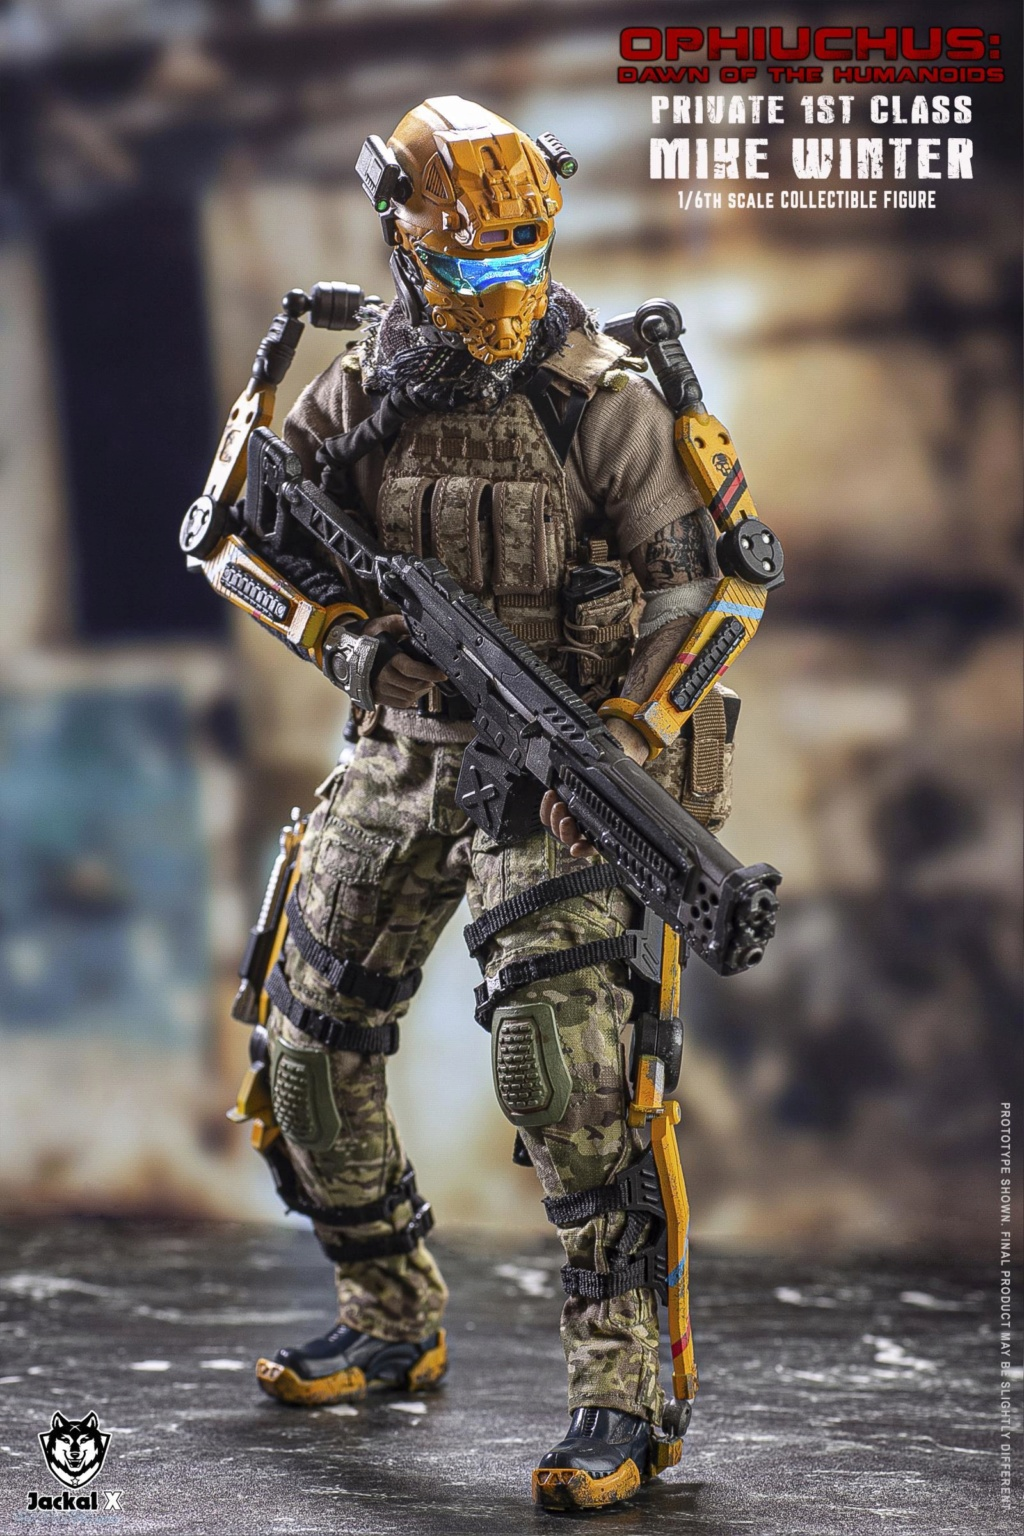 military - NEW PRODUCT: JackalX: 1/6 Ophiuchus: Dawn of Humanoid: Private 1st Class Mike Winter Collectible Figure (2 Versions) 43202018